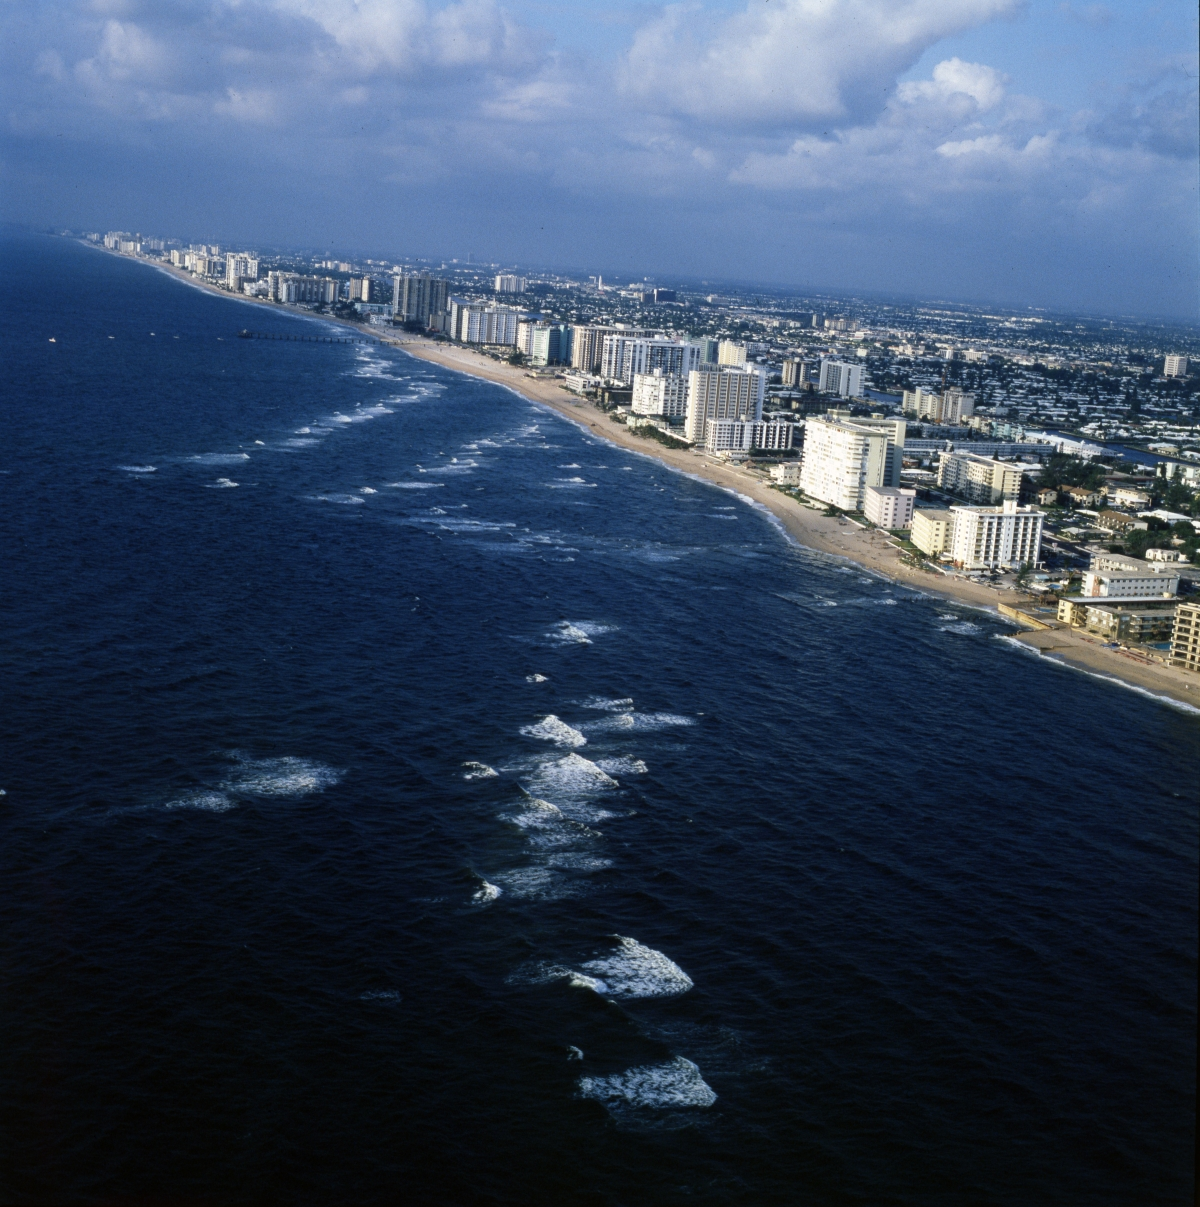 Aerial view looking southwest along the Pompano Beach coastline.